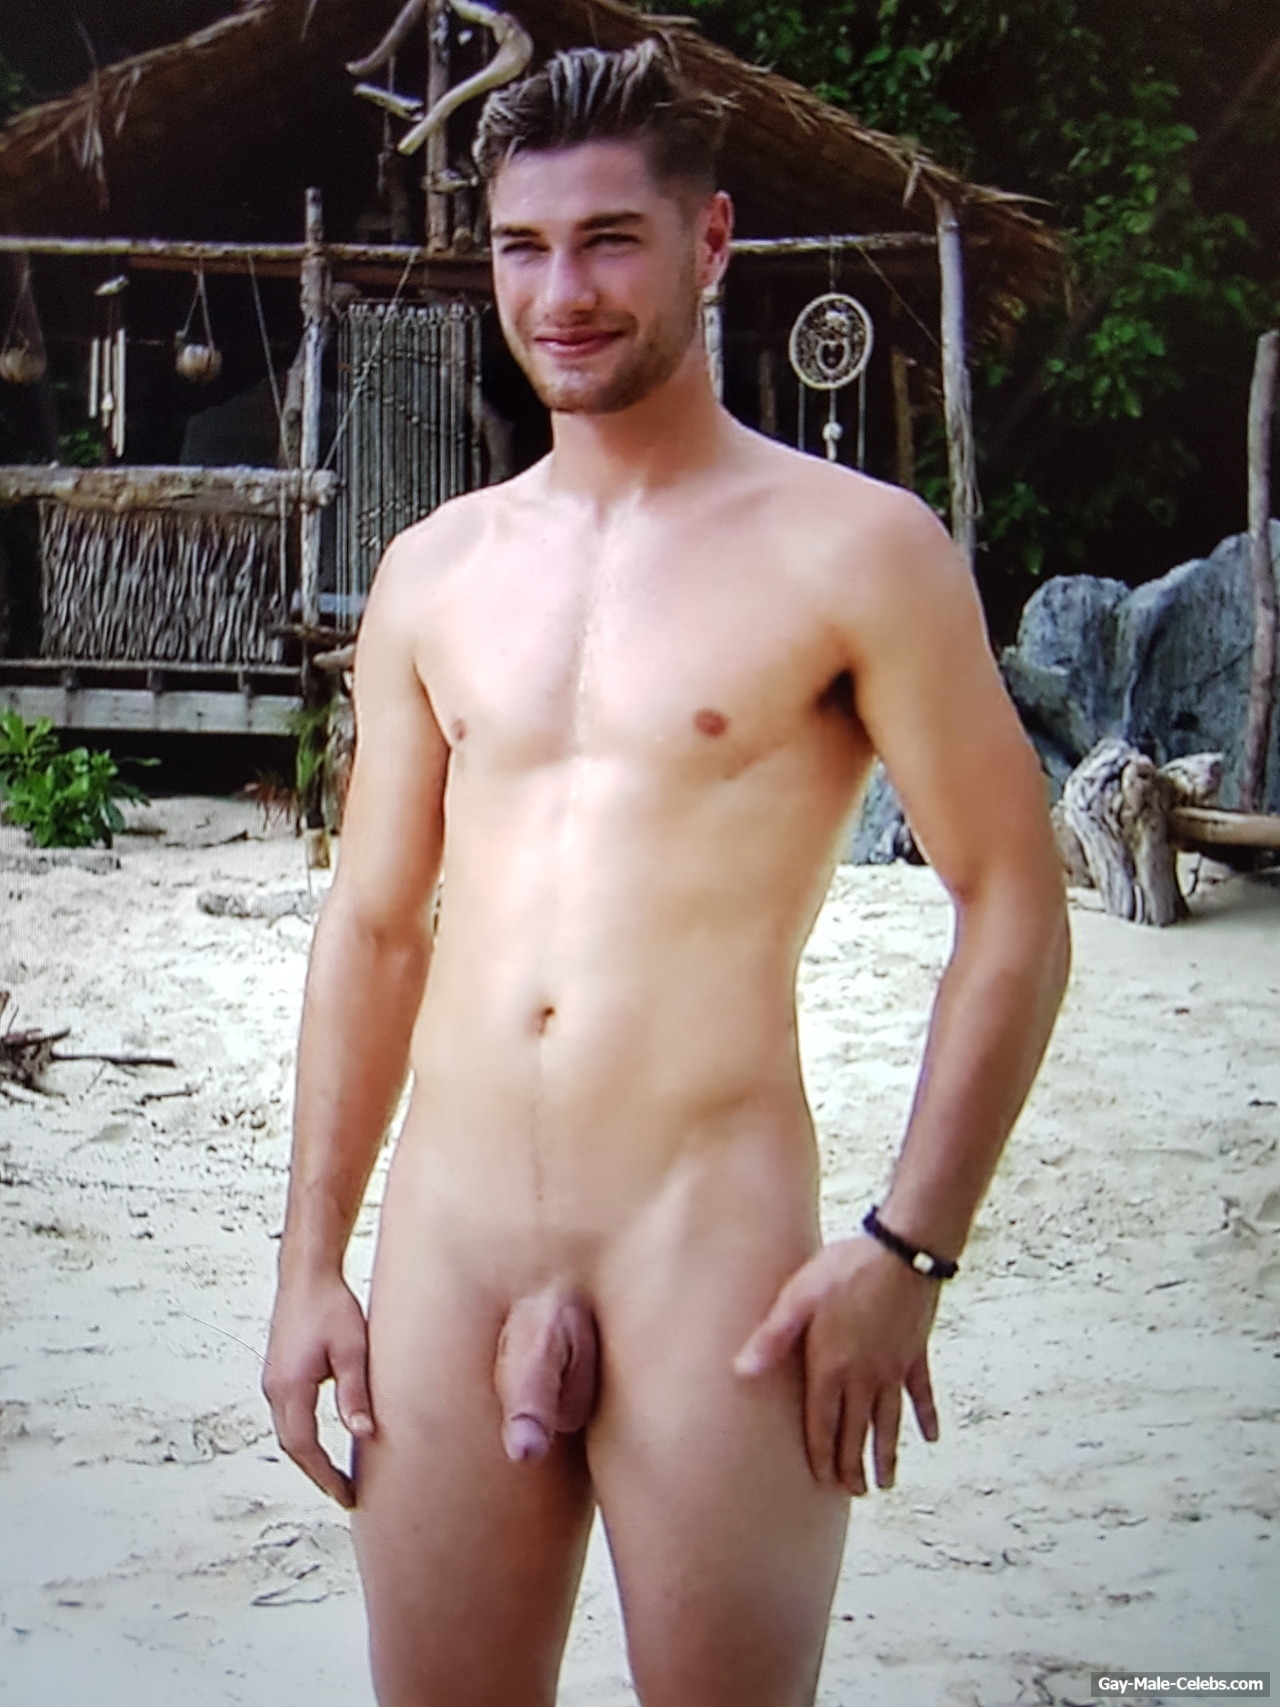 Joshua Feytons Frontal Nude During Reality Tv-Show  Adam Zkt Eva -9941